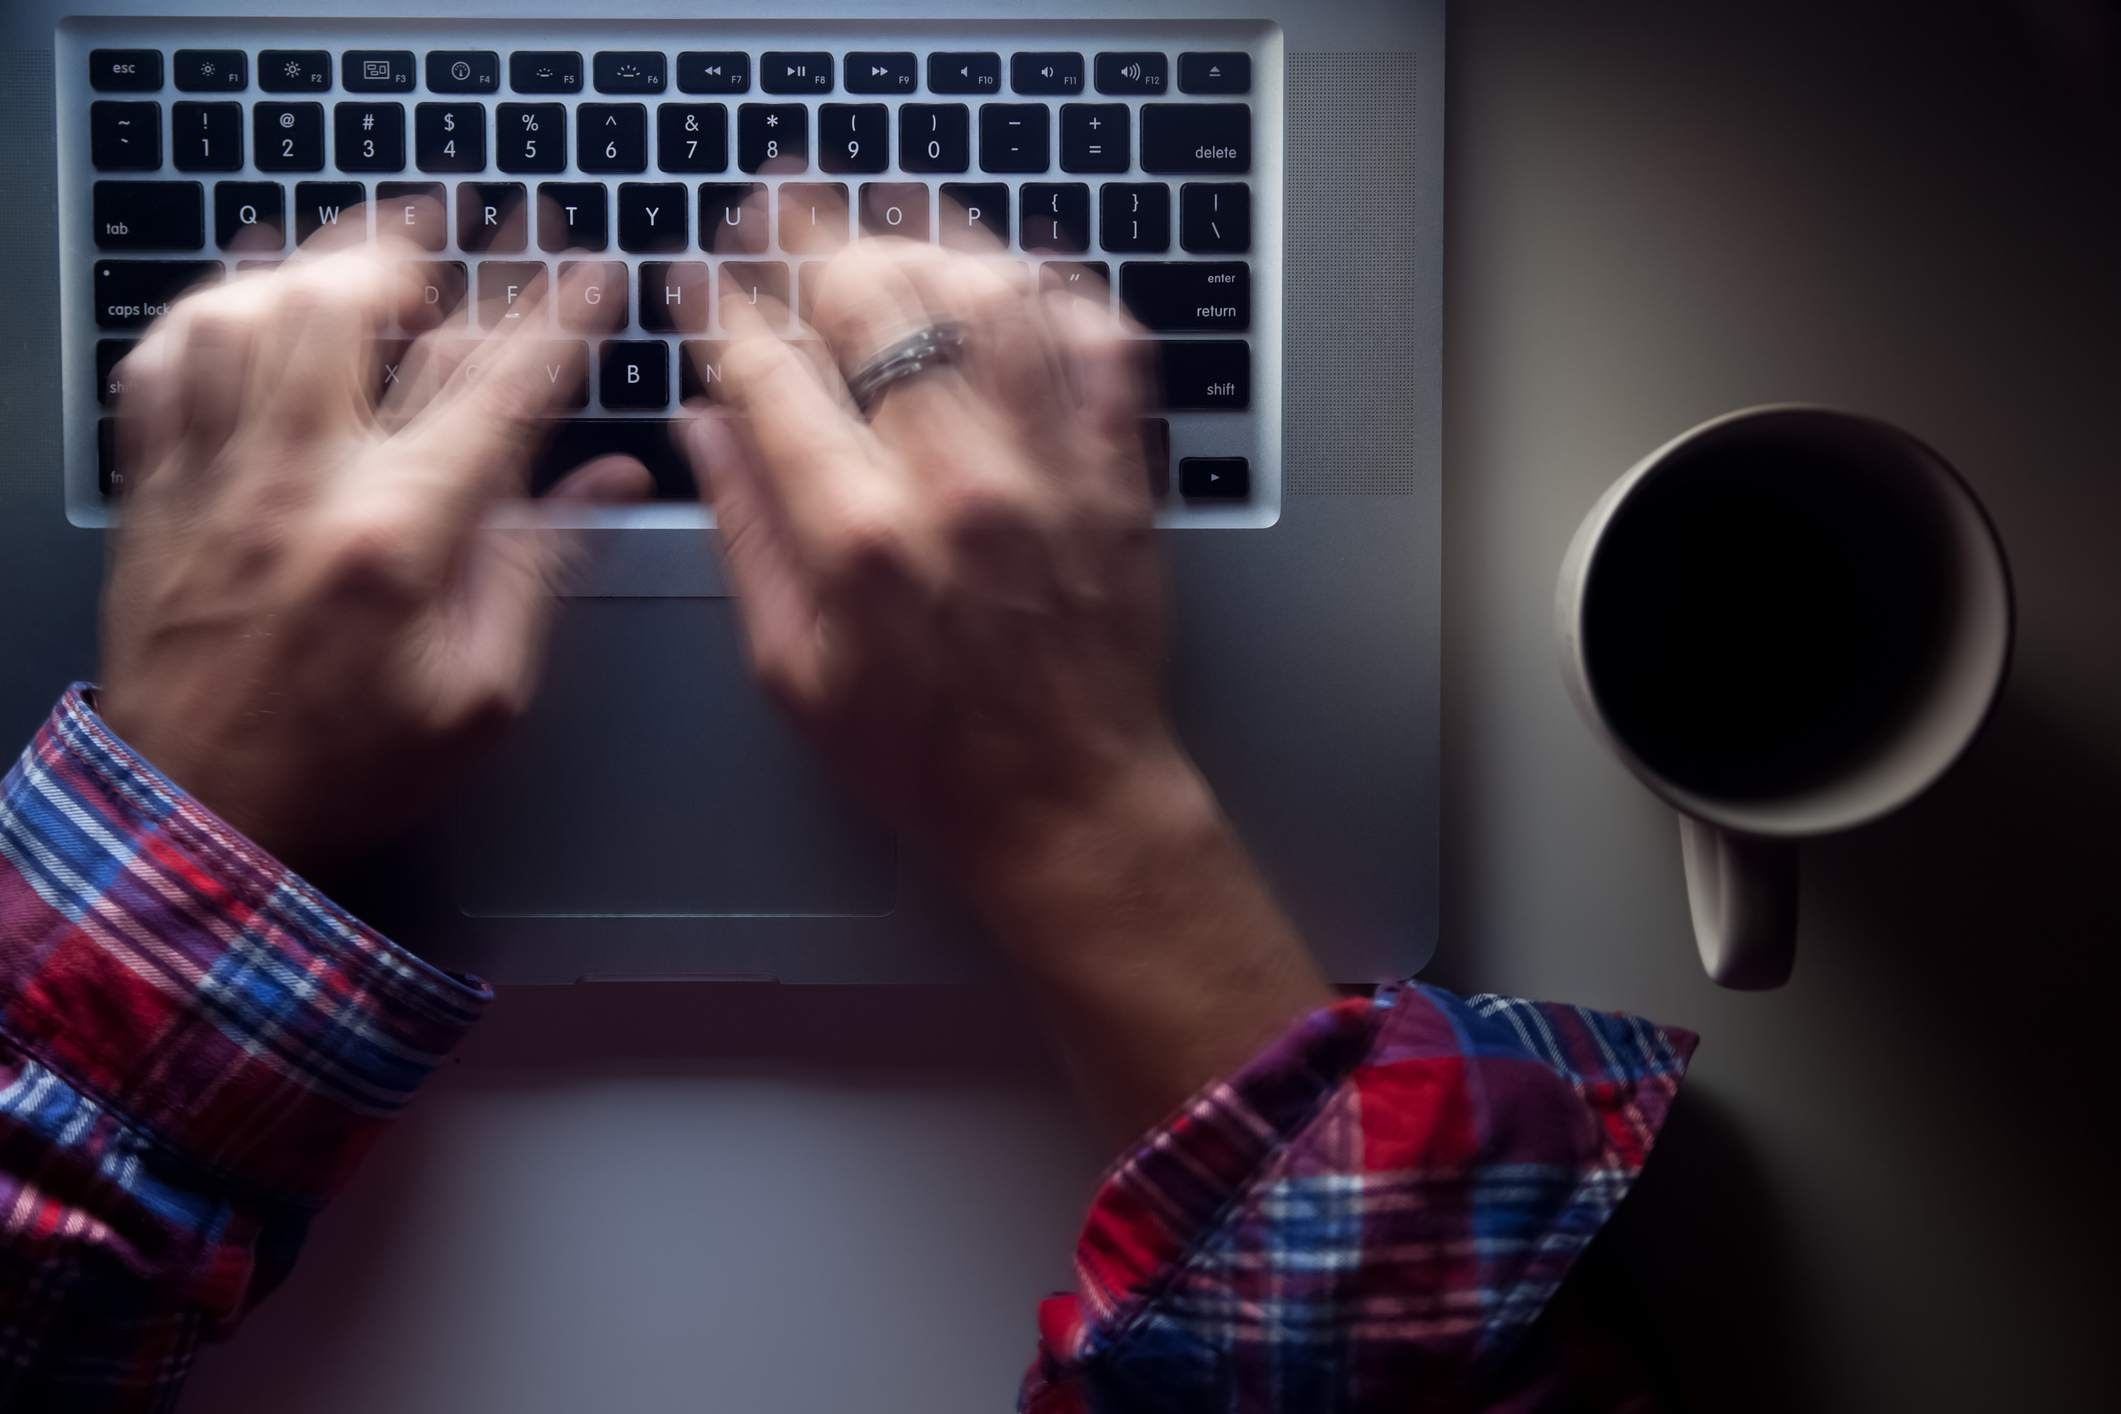 Time-lapse image of hands typing vigorously on a computer keyboard.